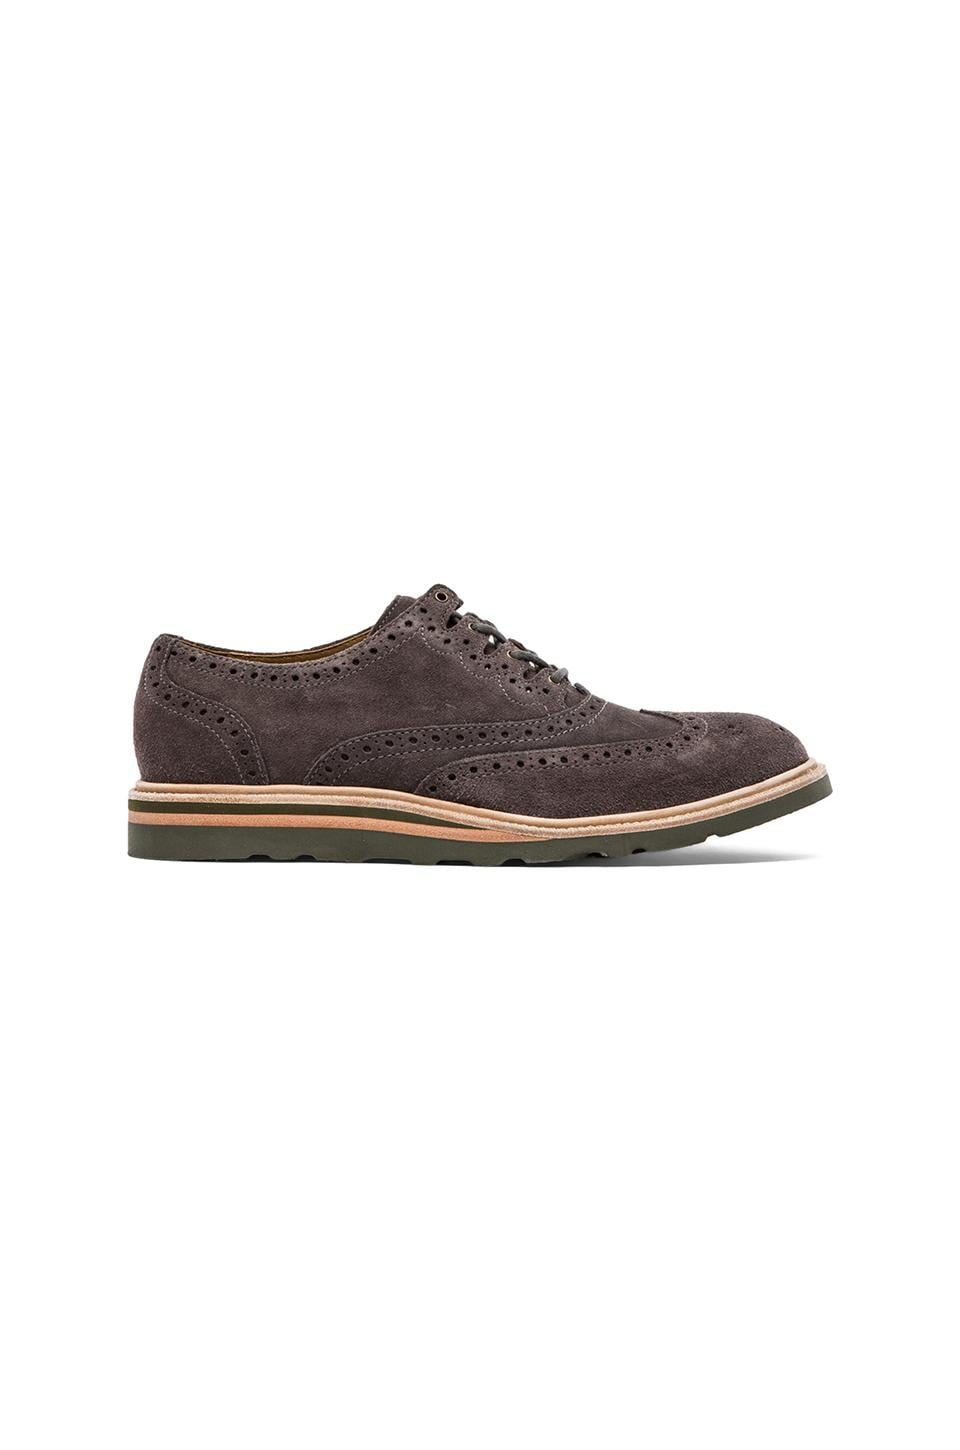 Cole Haan Christy Ghilley Oxford in Dark Gull Grey